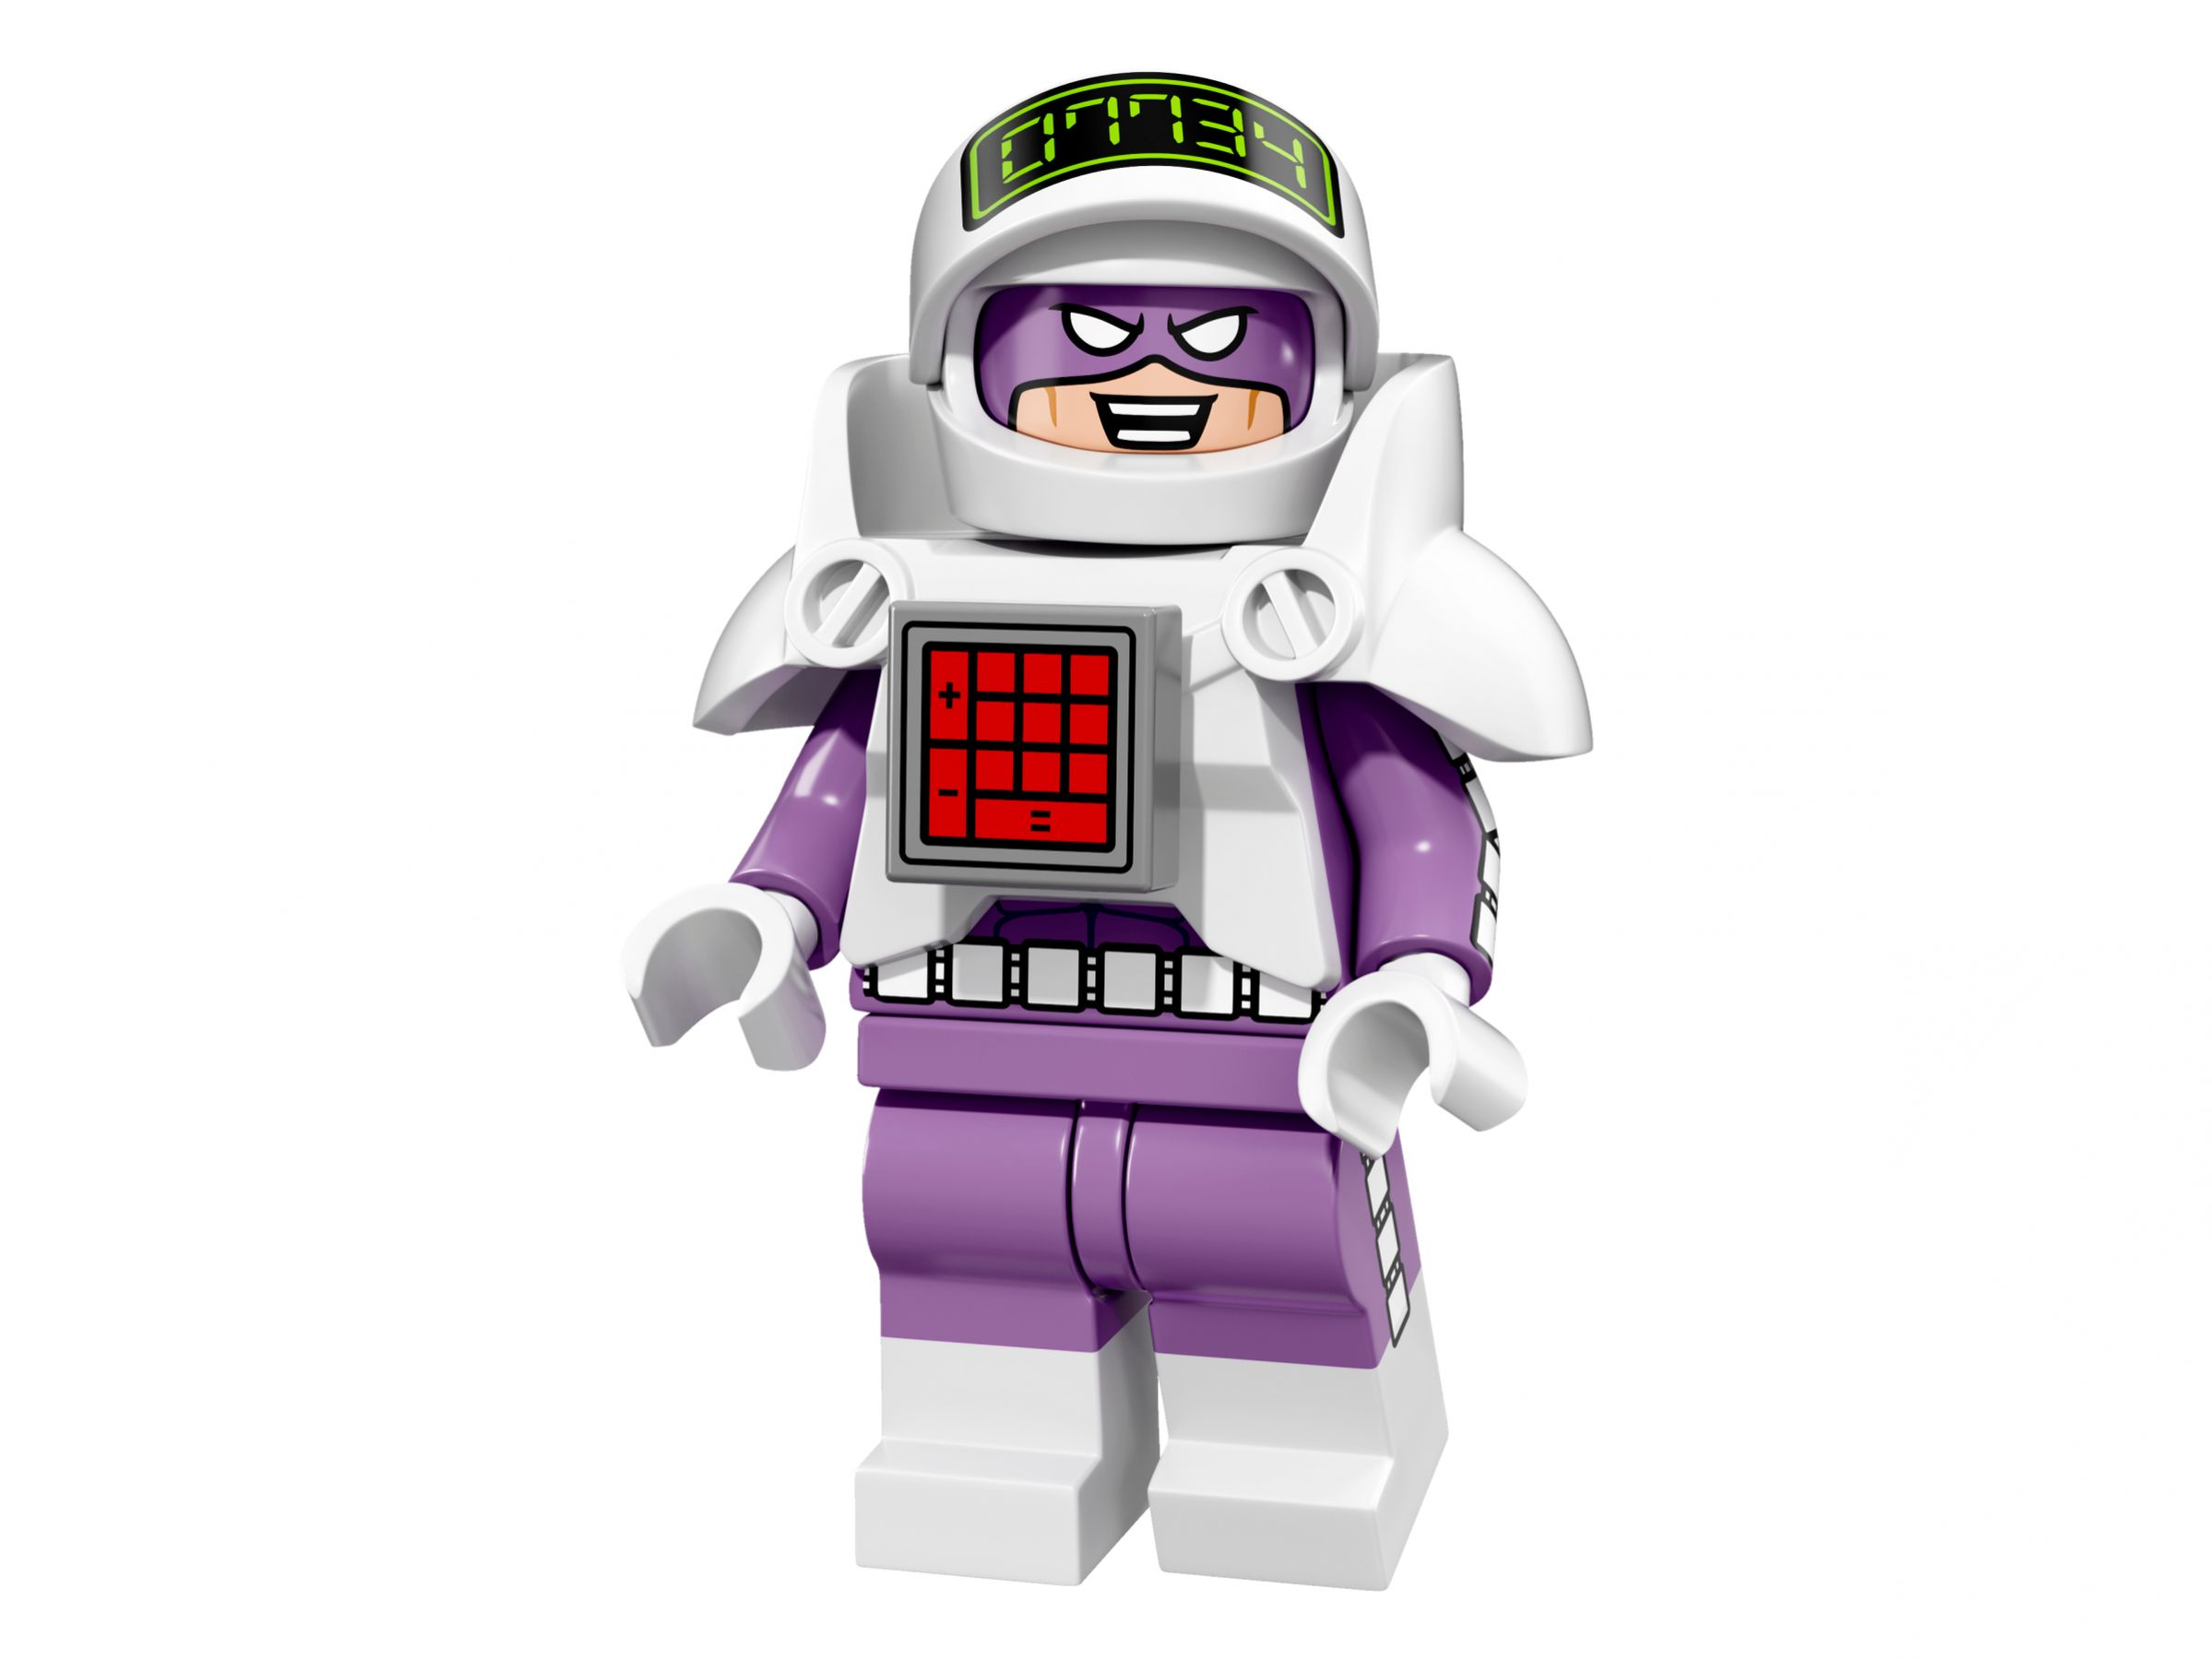 LEGO Collectable Minifigures 71017 LEGO® Batman Movie Minifiguren Serie LEGO_71017_alt14.jpg